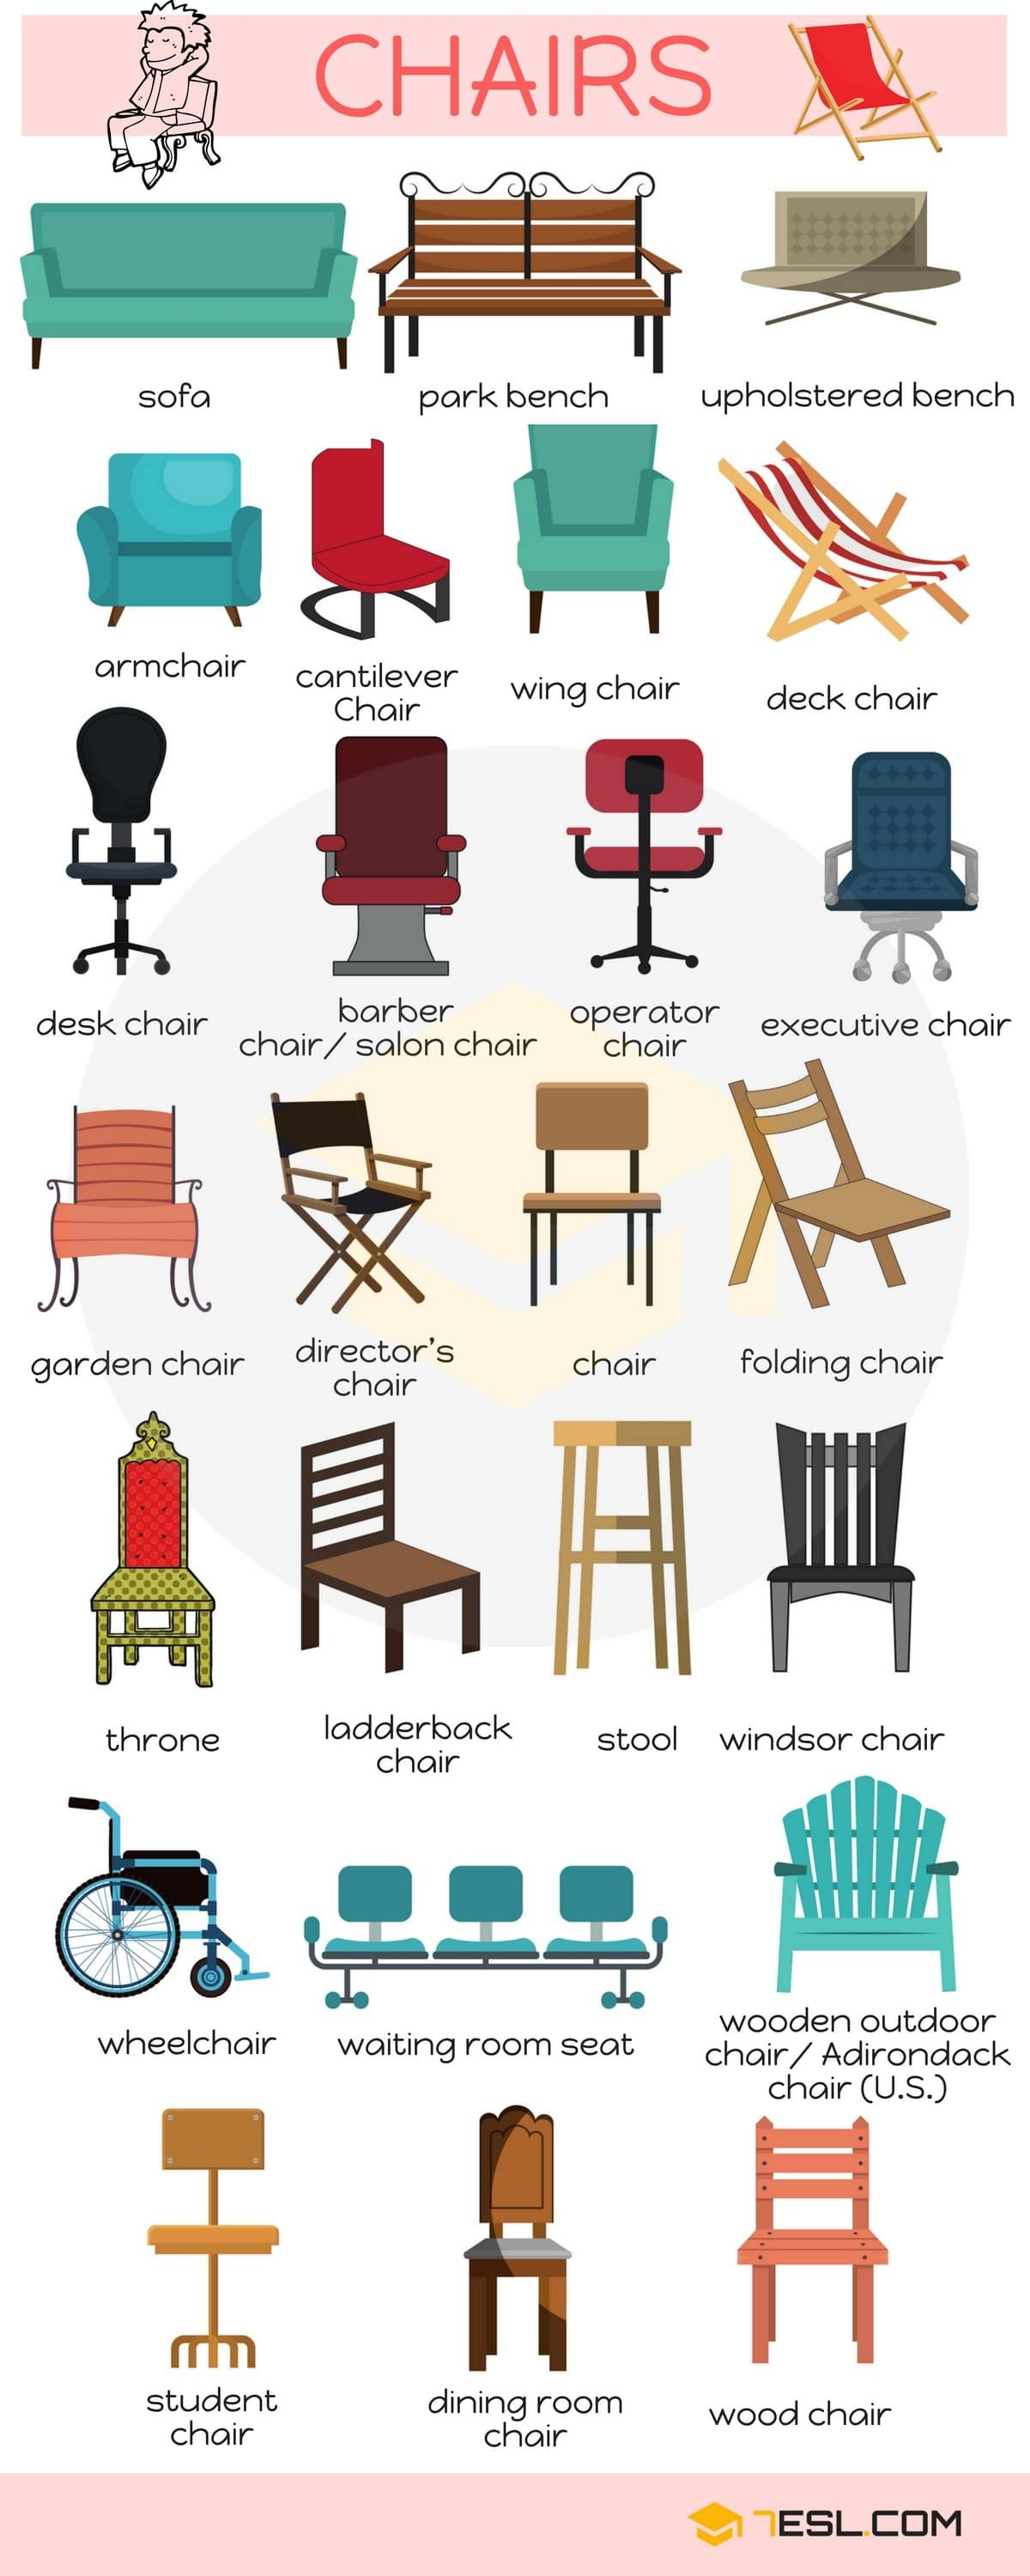 Types Of Chairs: List Of Chair Styles With Names - 7 E S L | English vocabulary, Learn english vocabulary, English language learning